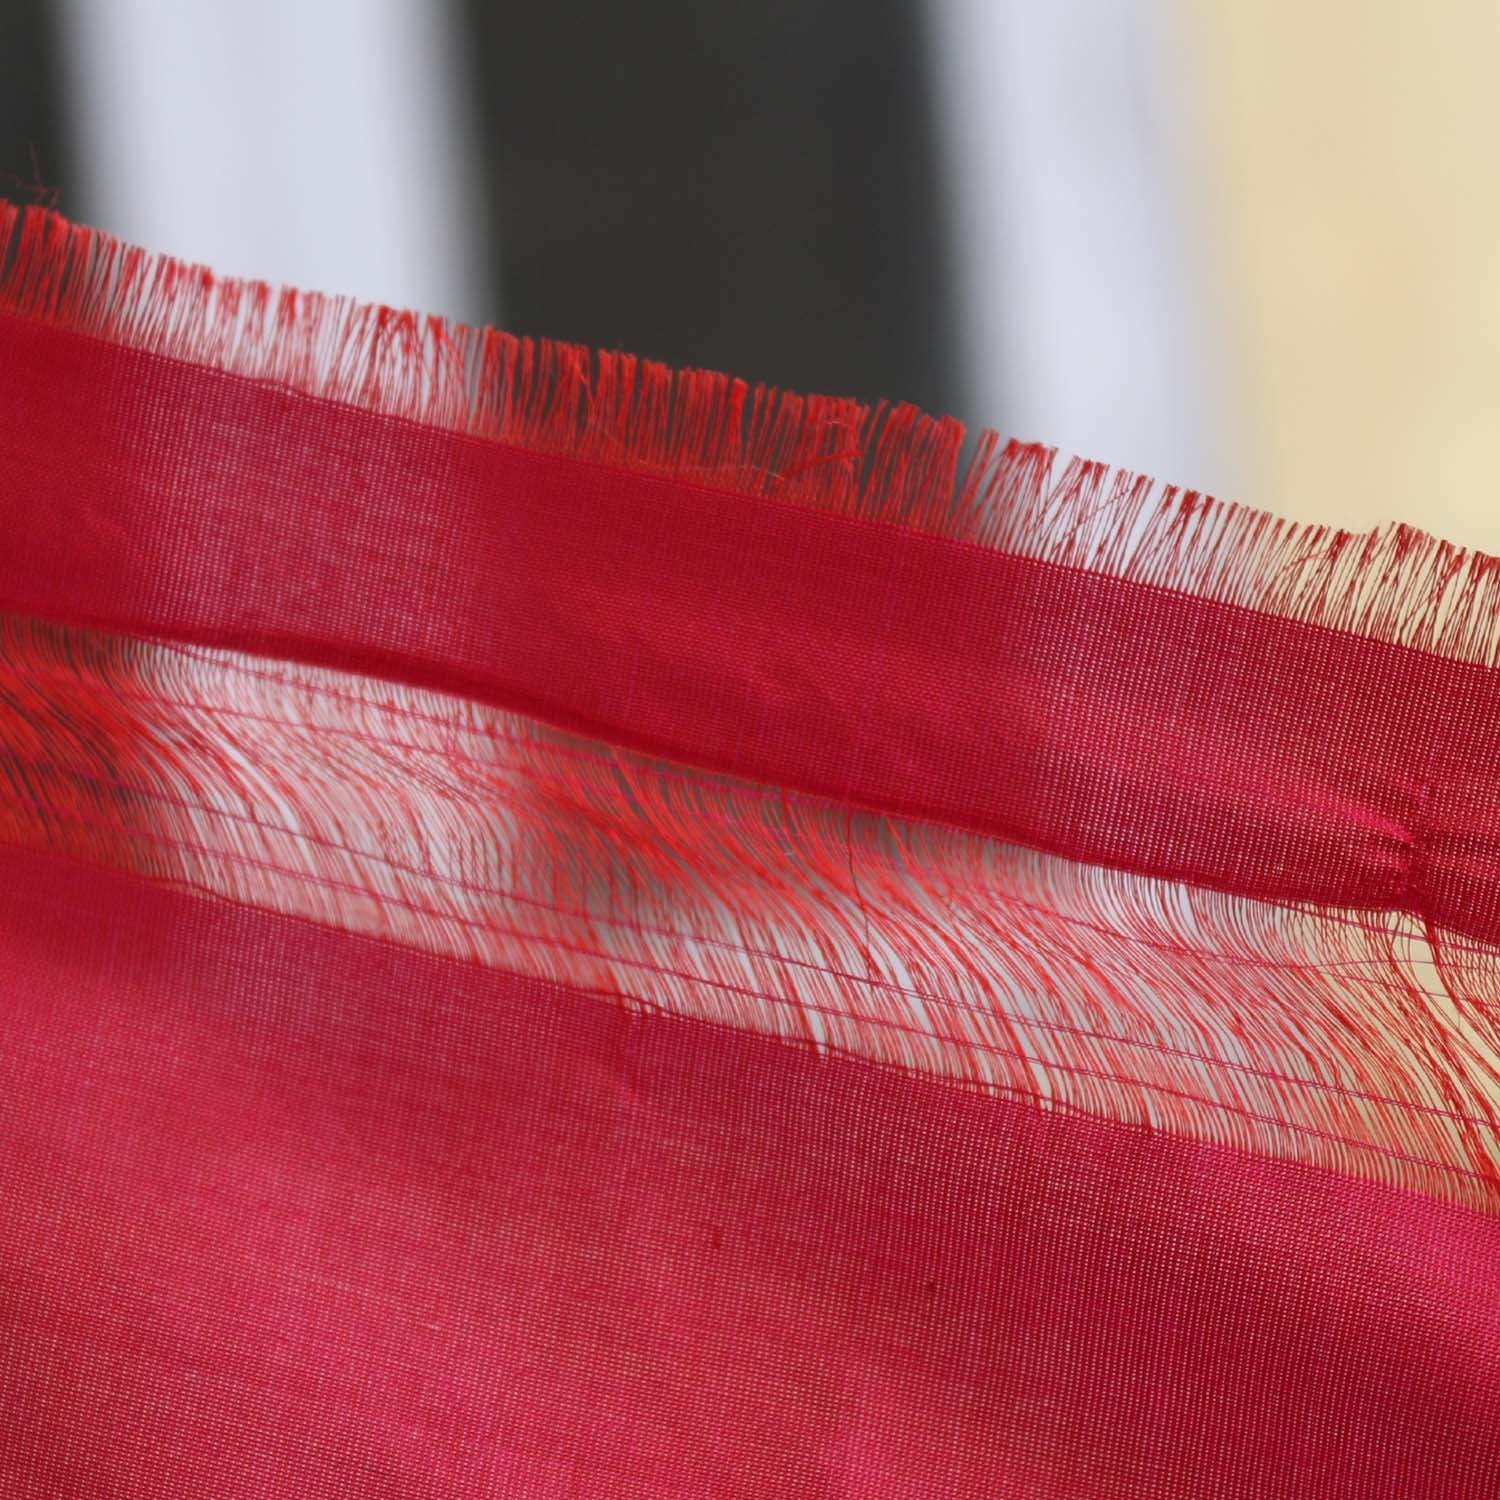 Indian Pink Pure Katan Silk  Banarasi Handloom Dupatta Red - Tilfi - 3